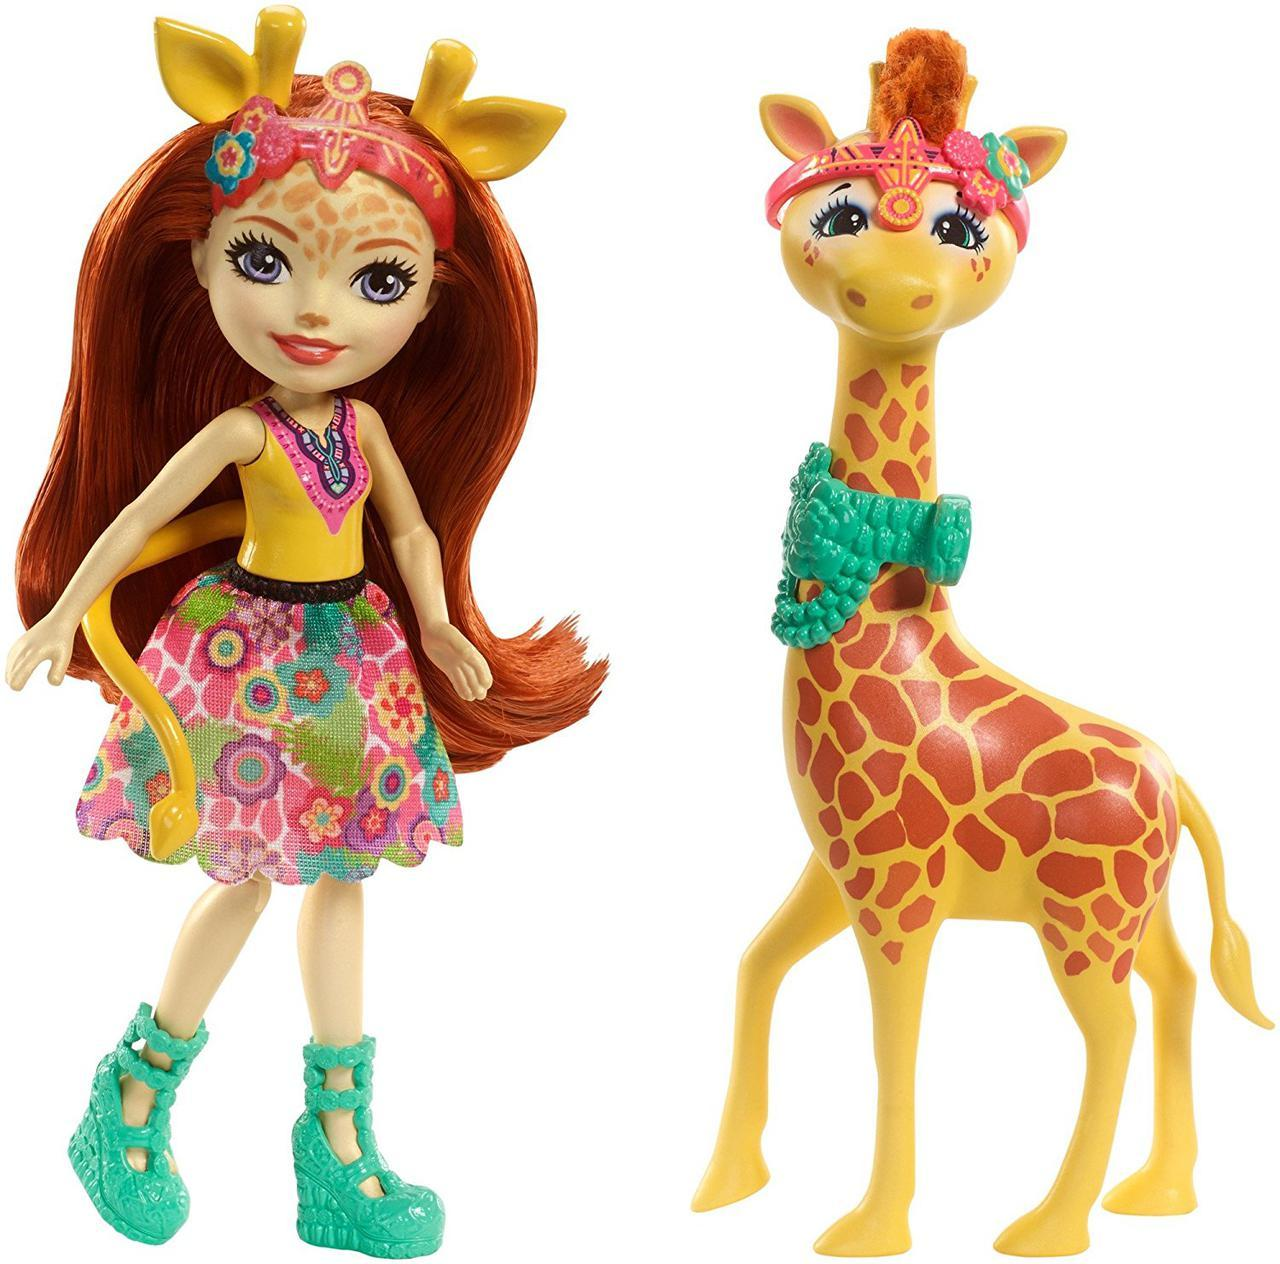 Кукла Энчантималс Жираф Джиллиан и друг Повл Enchantimals Gillian Giraffe s Fashion Dolls